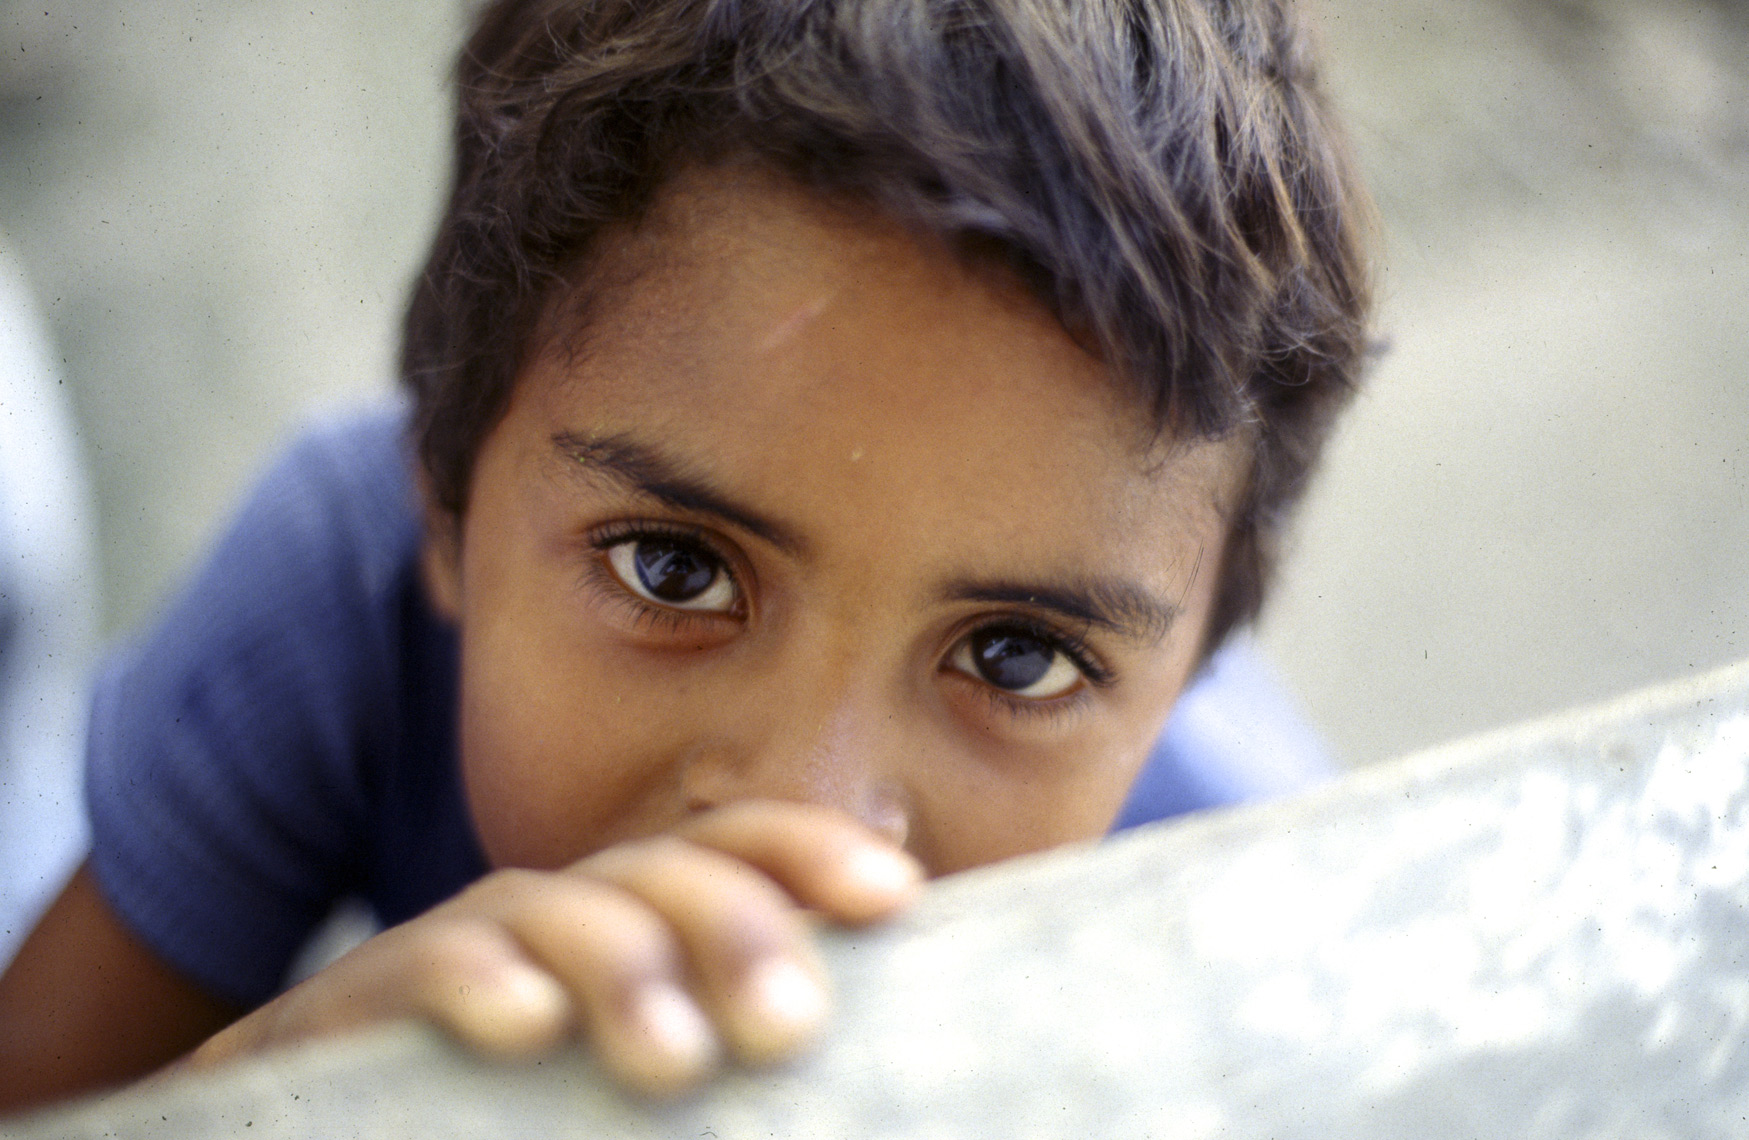 Young boy with big eyes Caracas,Venezula/Steve Mason Photography